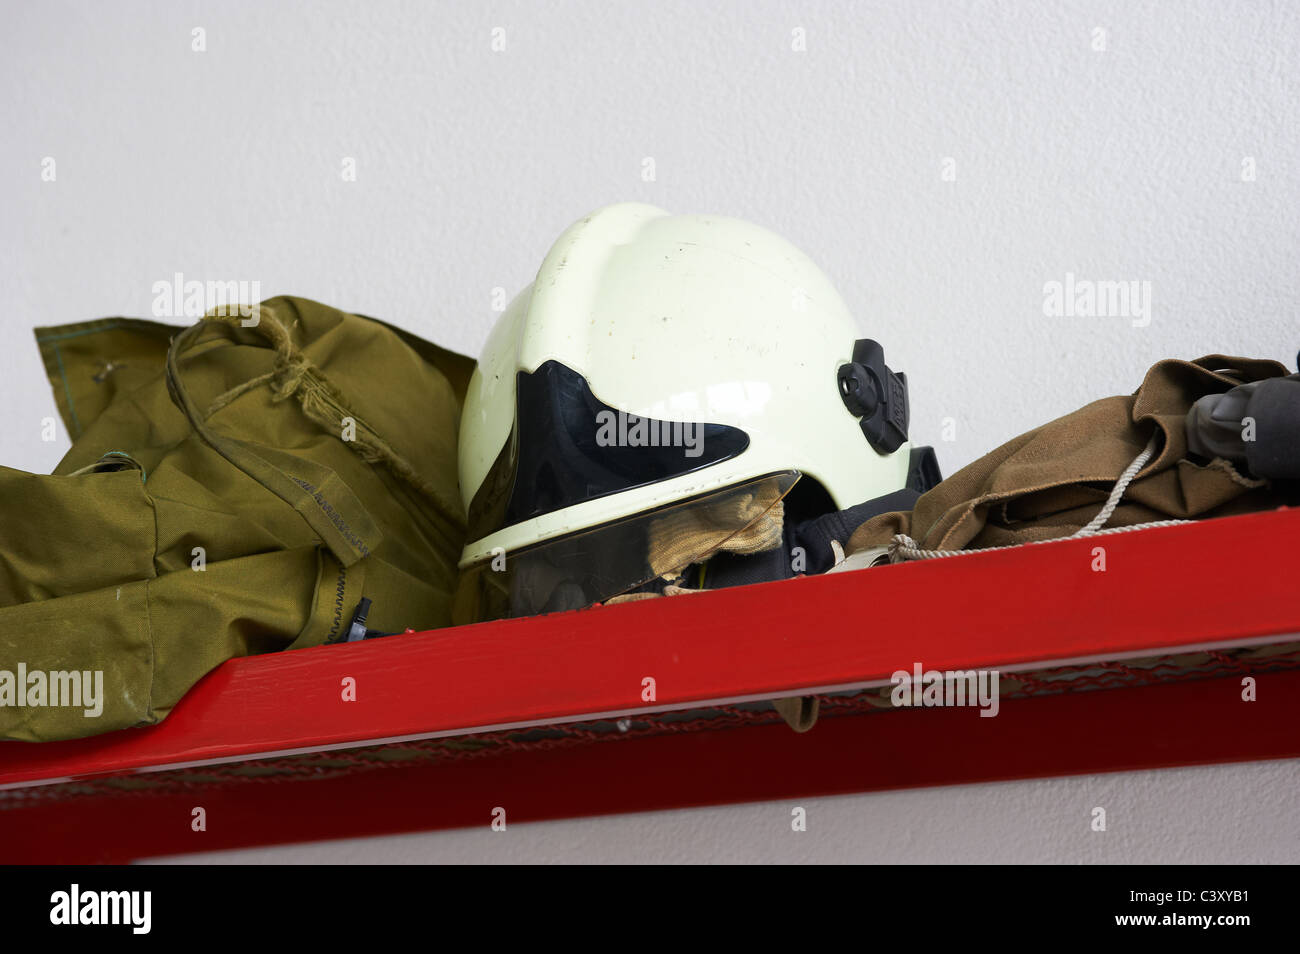 Fire engines, water hoses, nozzles and other equipment at a fire department. Czech Republic Stock Photo